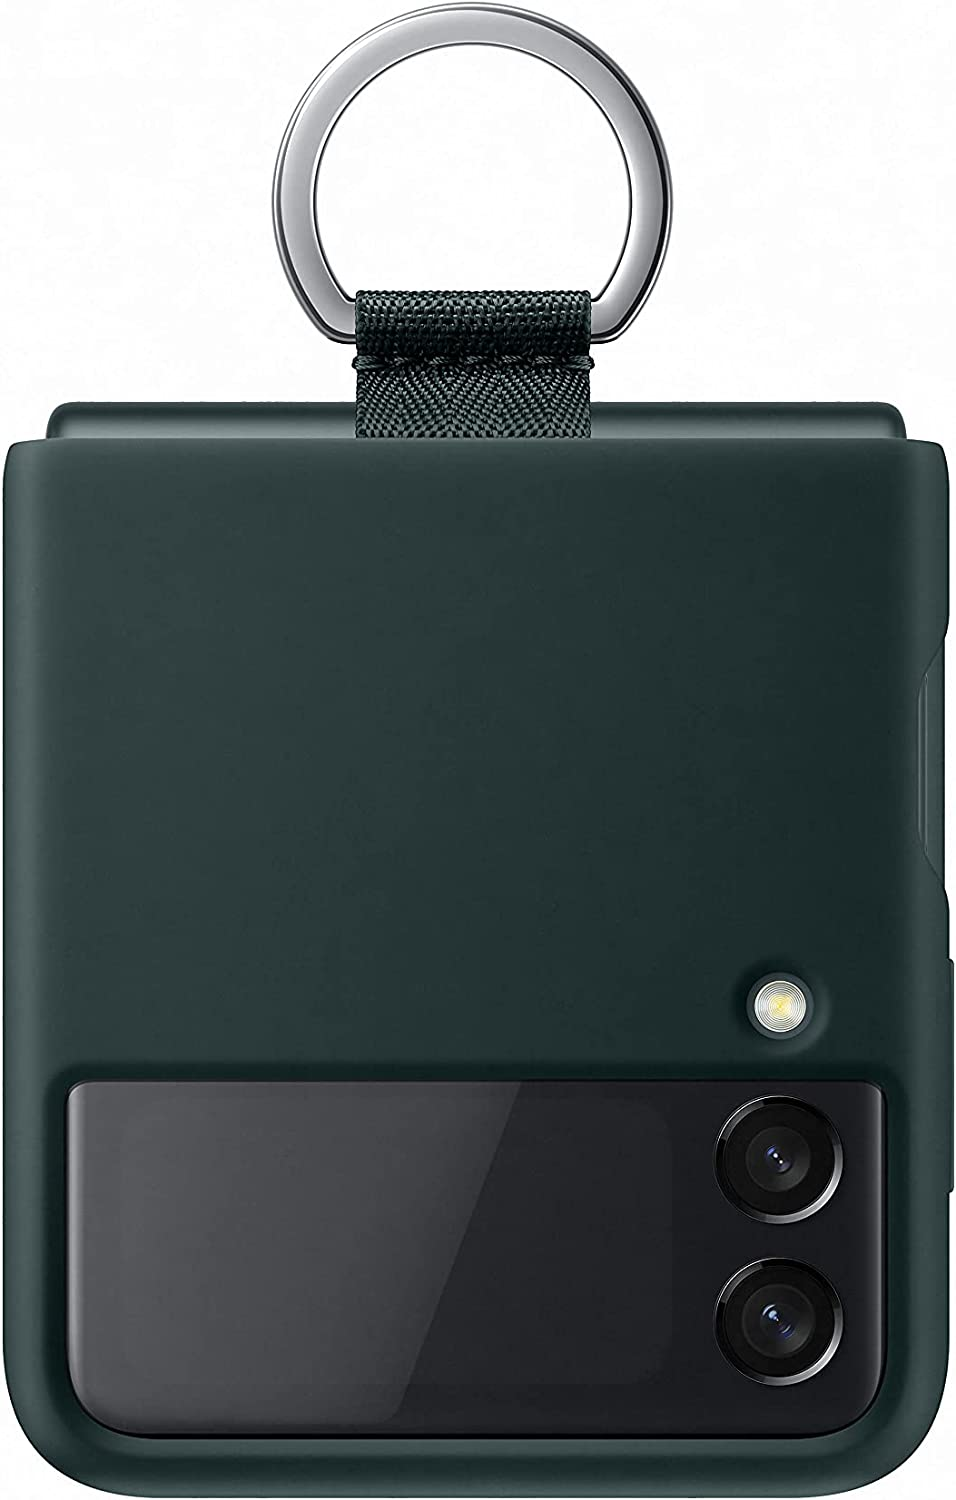 Samsung Galaxy Z Flip3 Silicone Cover with Ring - Official Samsung Case - Green